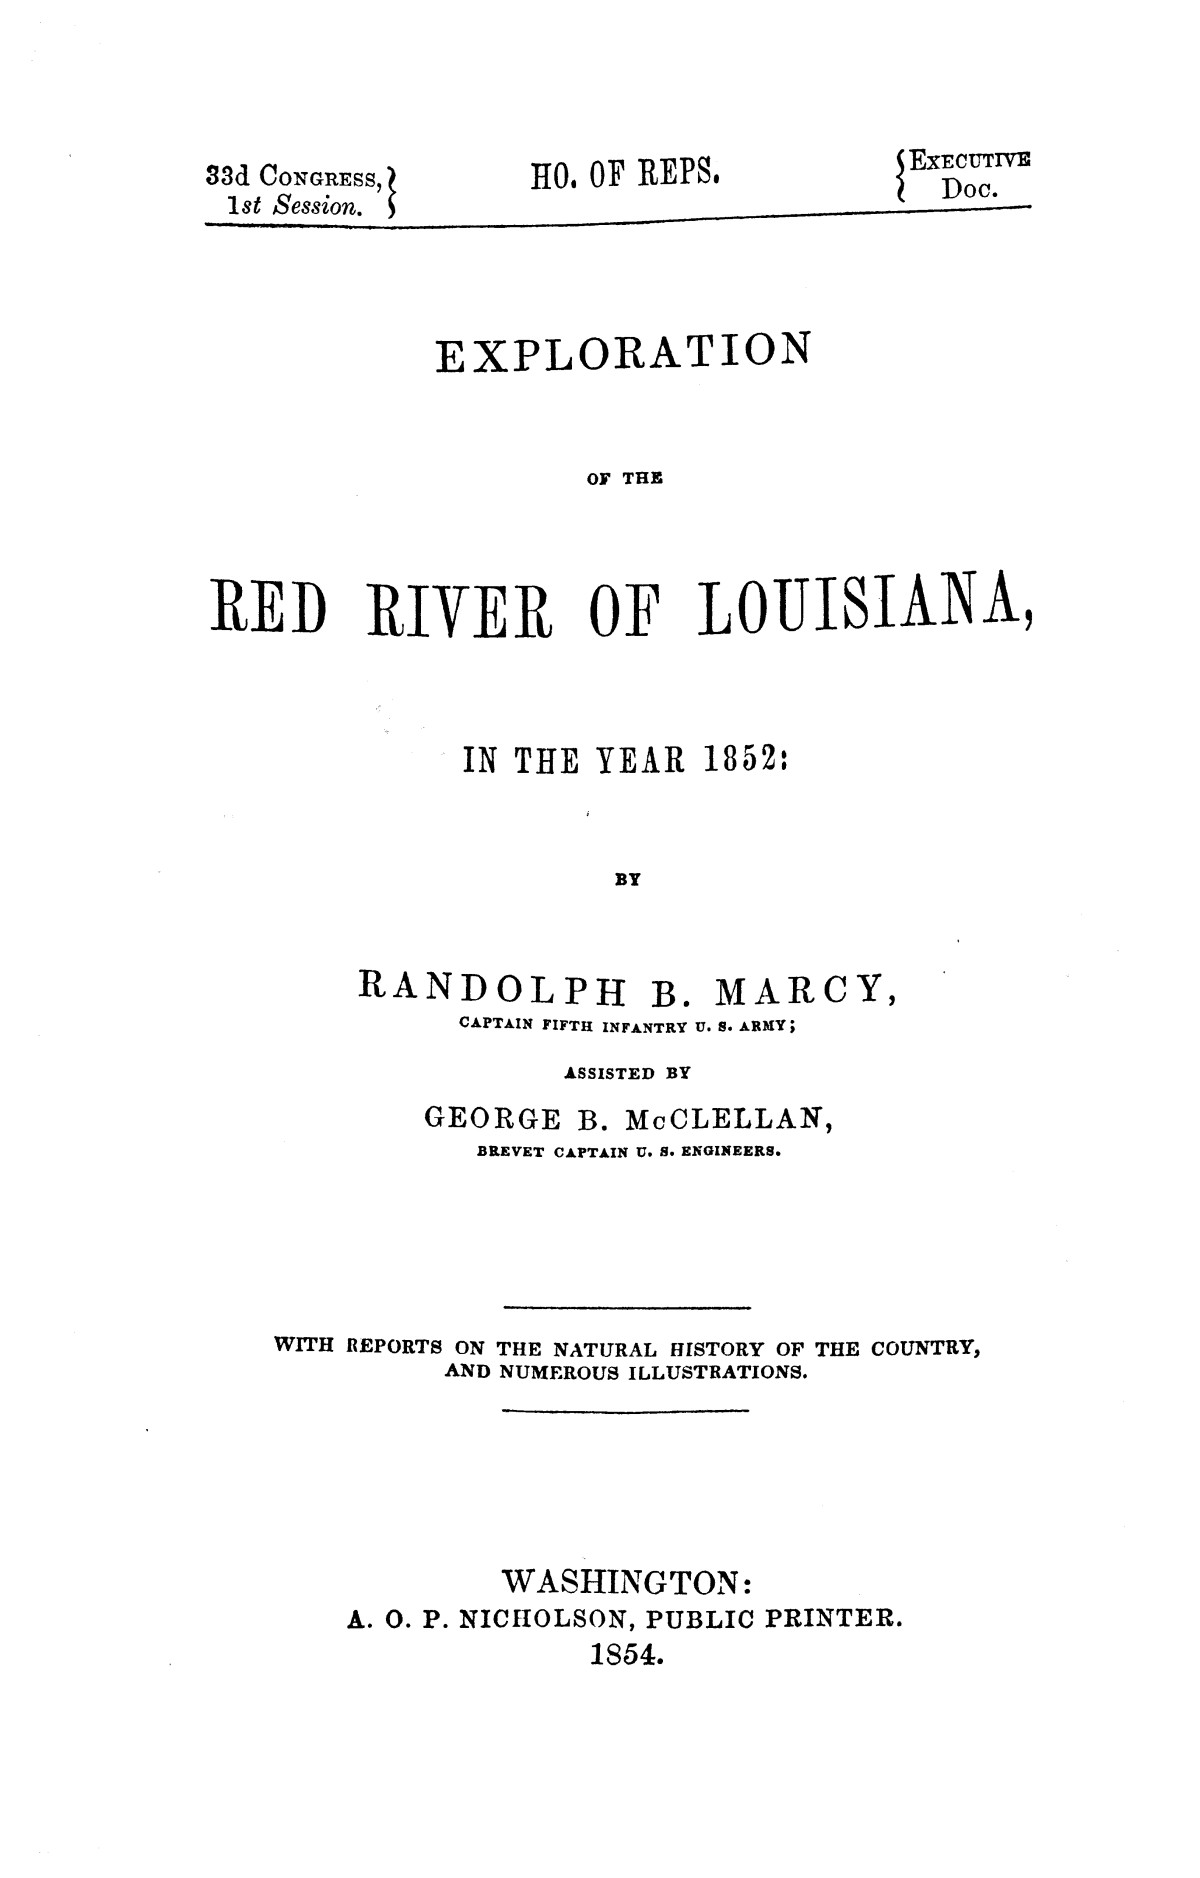 Exploration of the Red River of Louisiana, in the year 1852 / by Randolph B. Marcy ; assisted by George B. McClellan.                                                                                                      [Sequence #]: 1 of 368